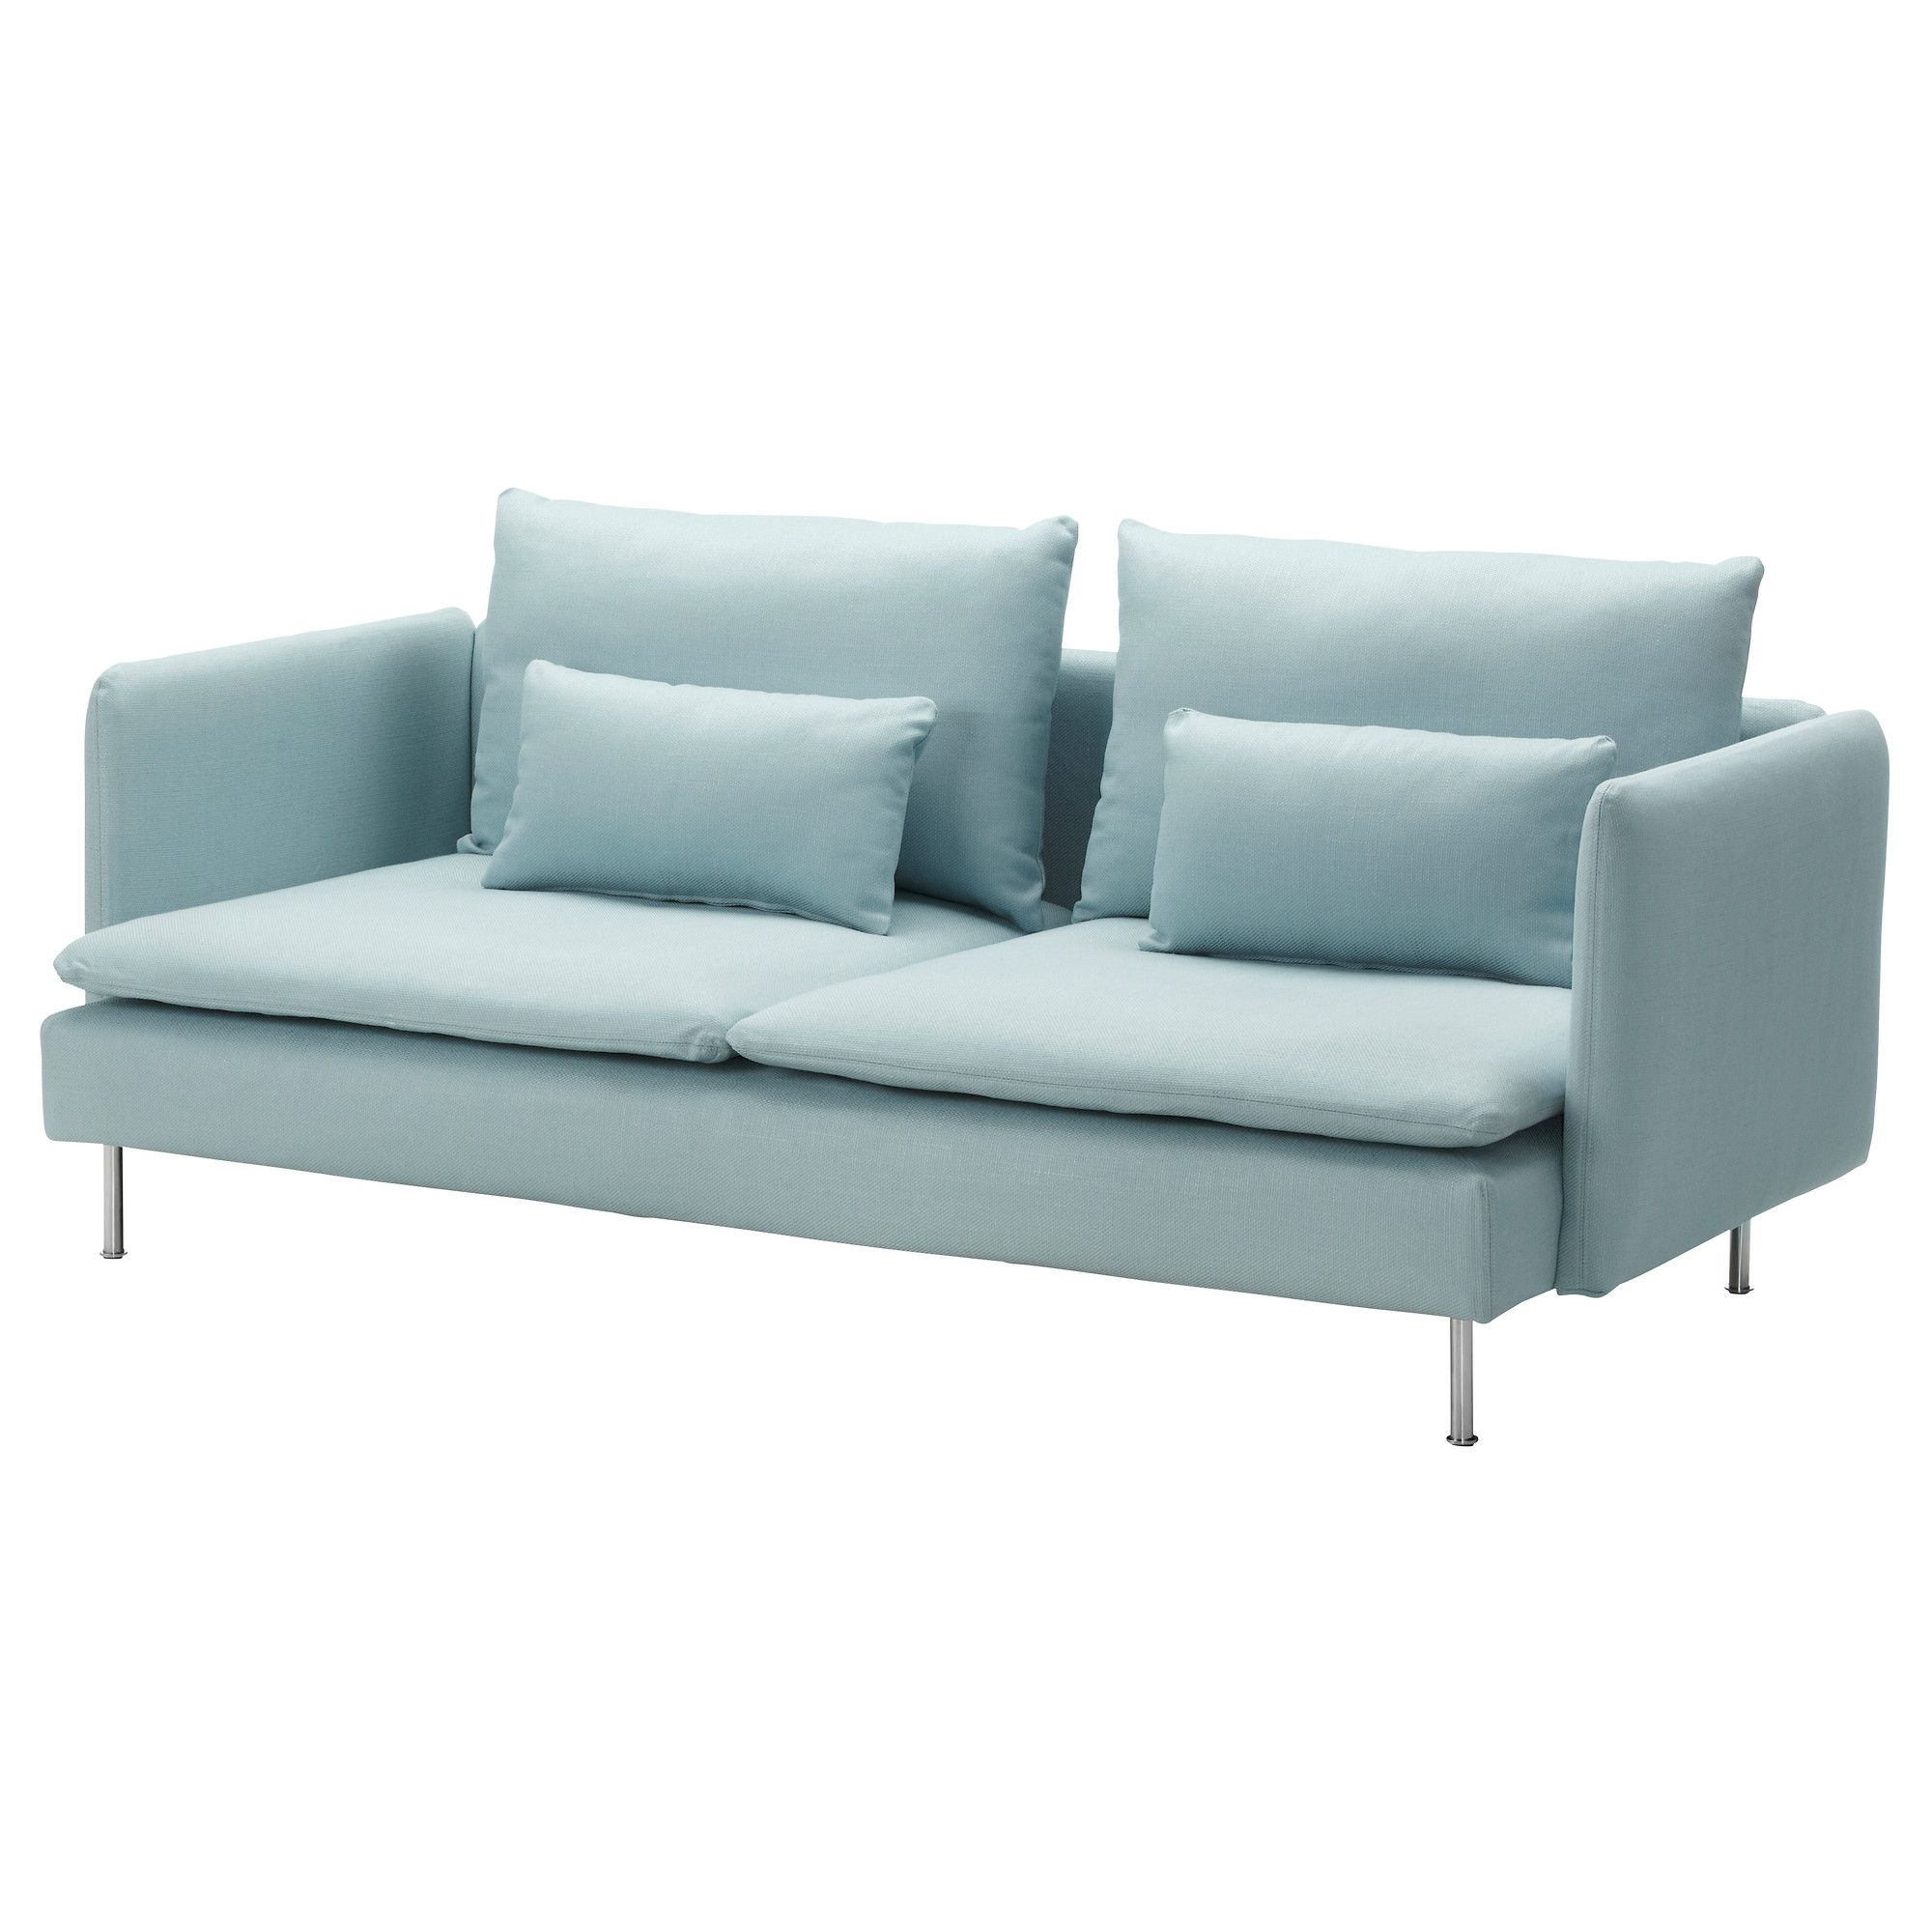 Bettsofas Ikea Schweiz SÖderhamn Three Seat Sofa Isefall Light Turquoise Ikea